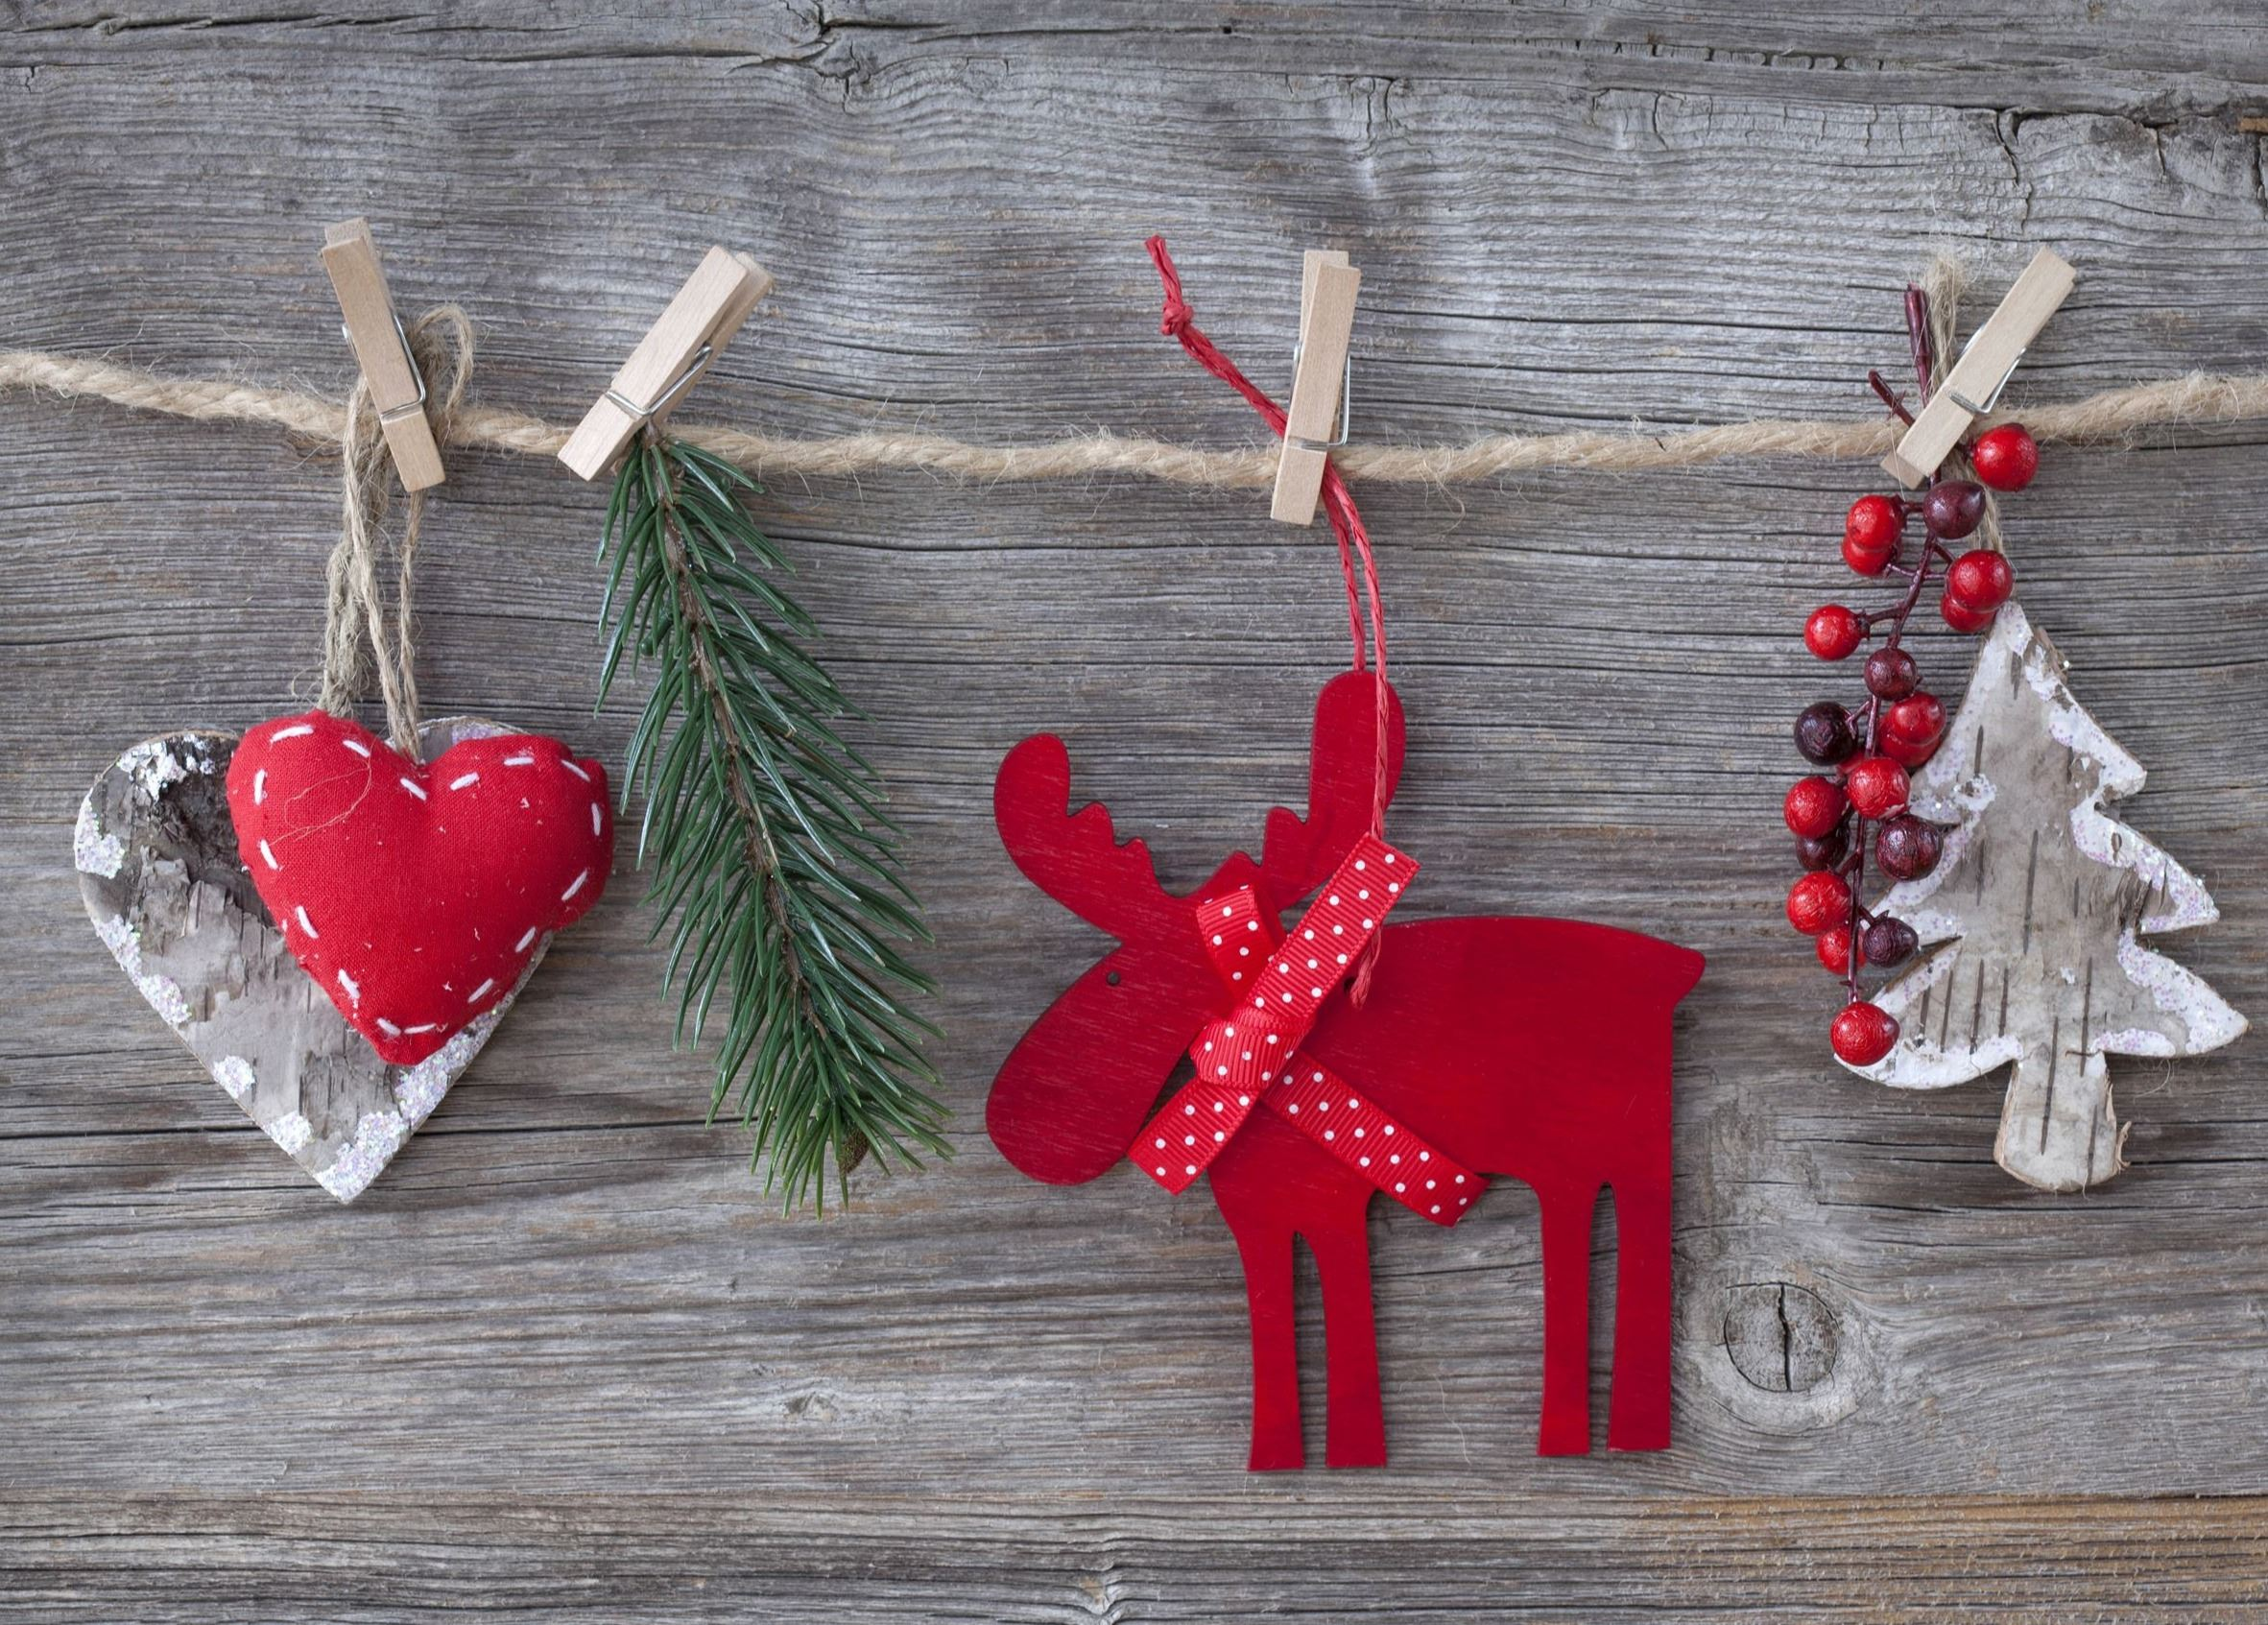 Close up of Christmas Decorations of hearts, pine branch, reindeer, berries, and Christmas tree